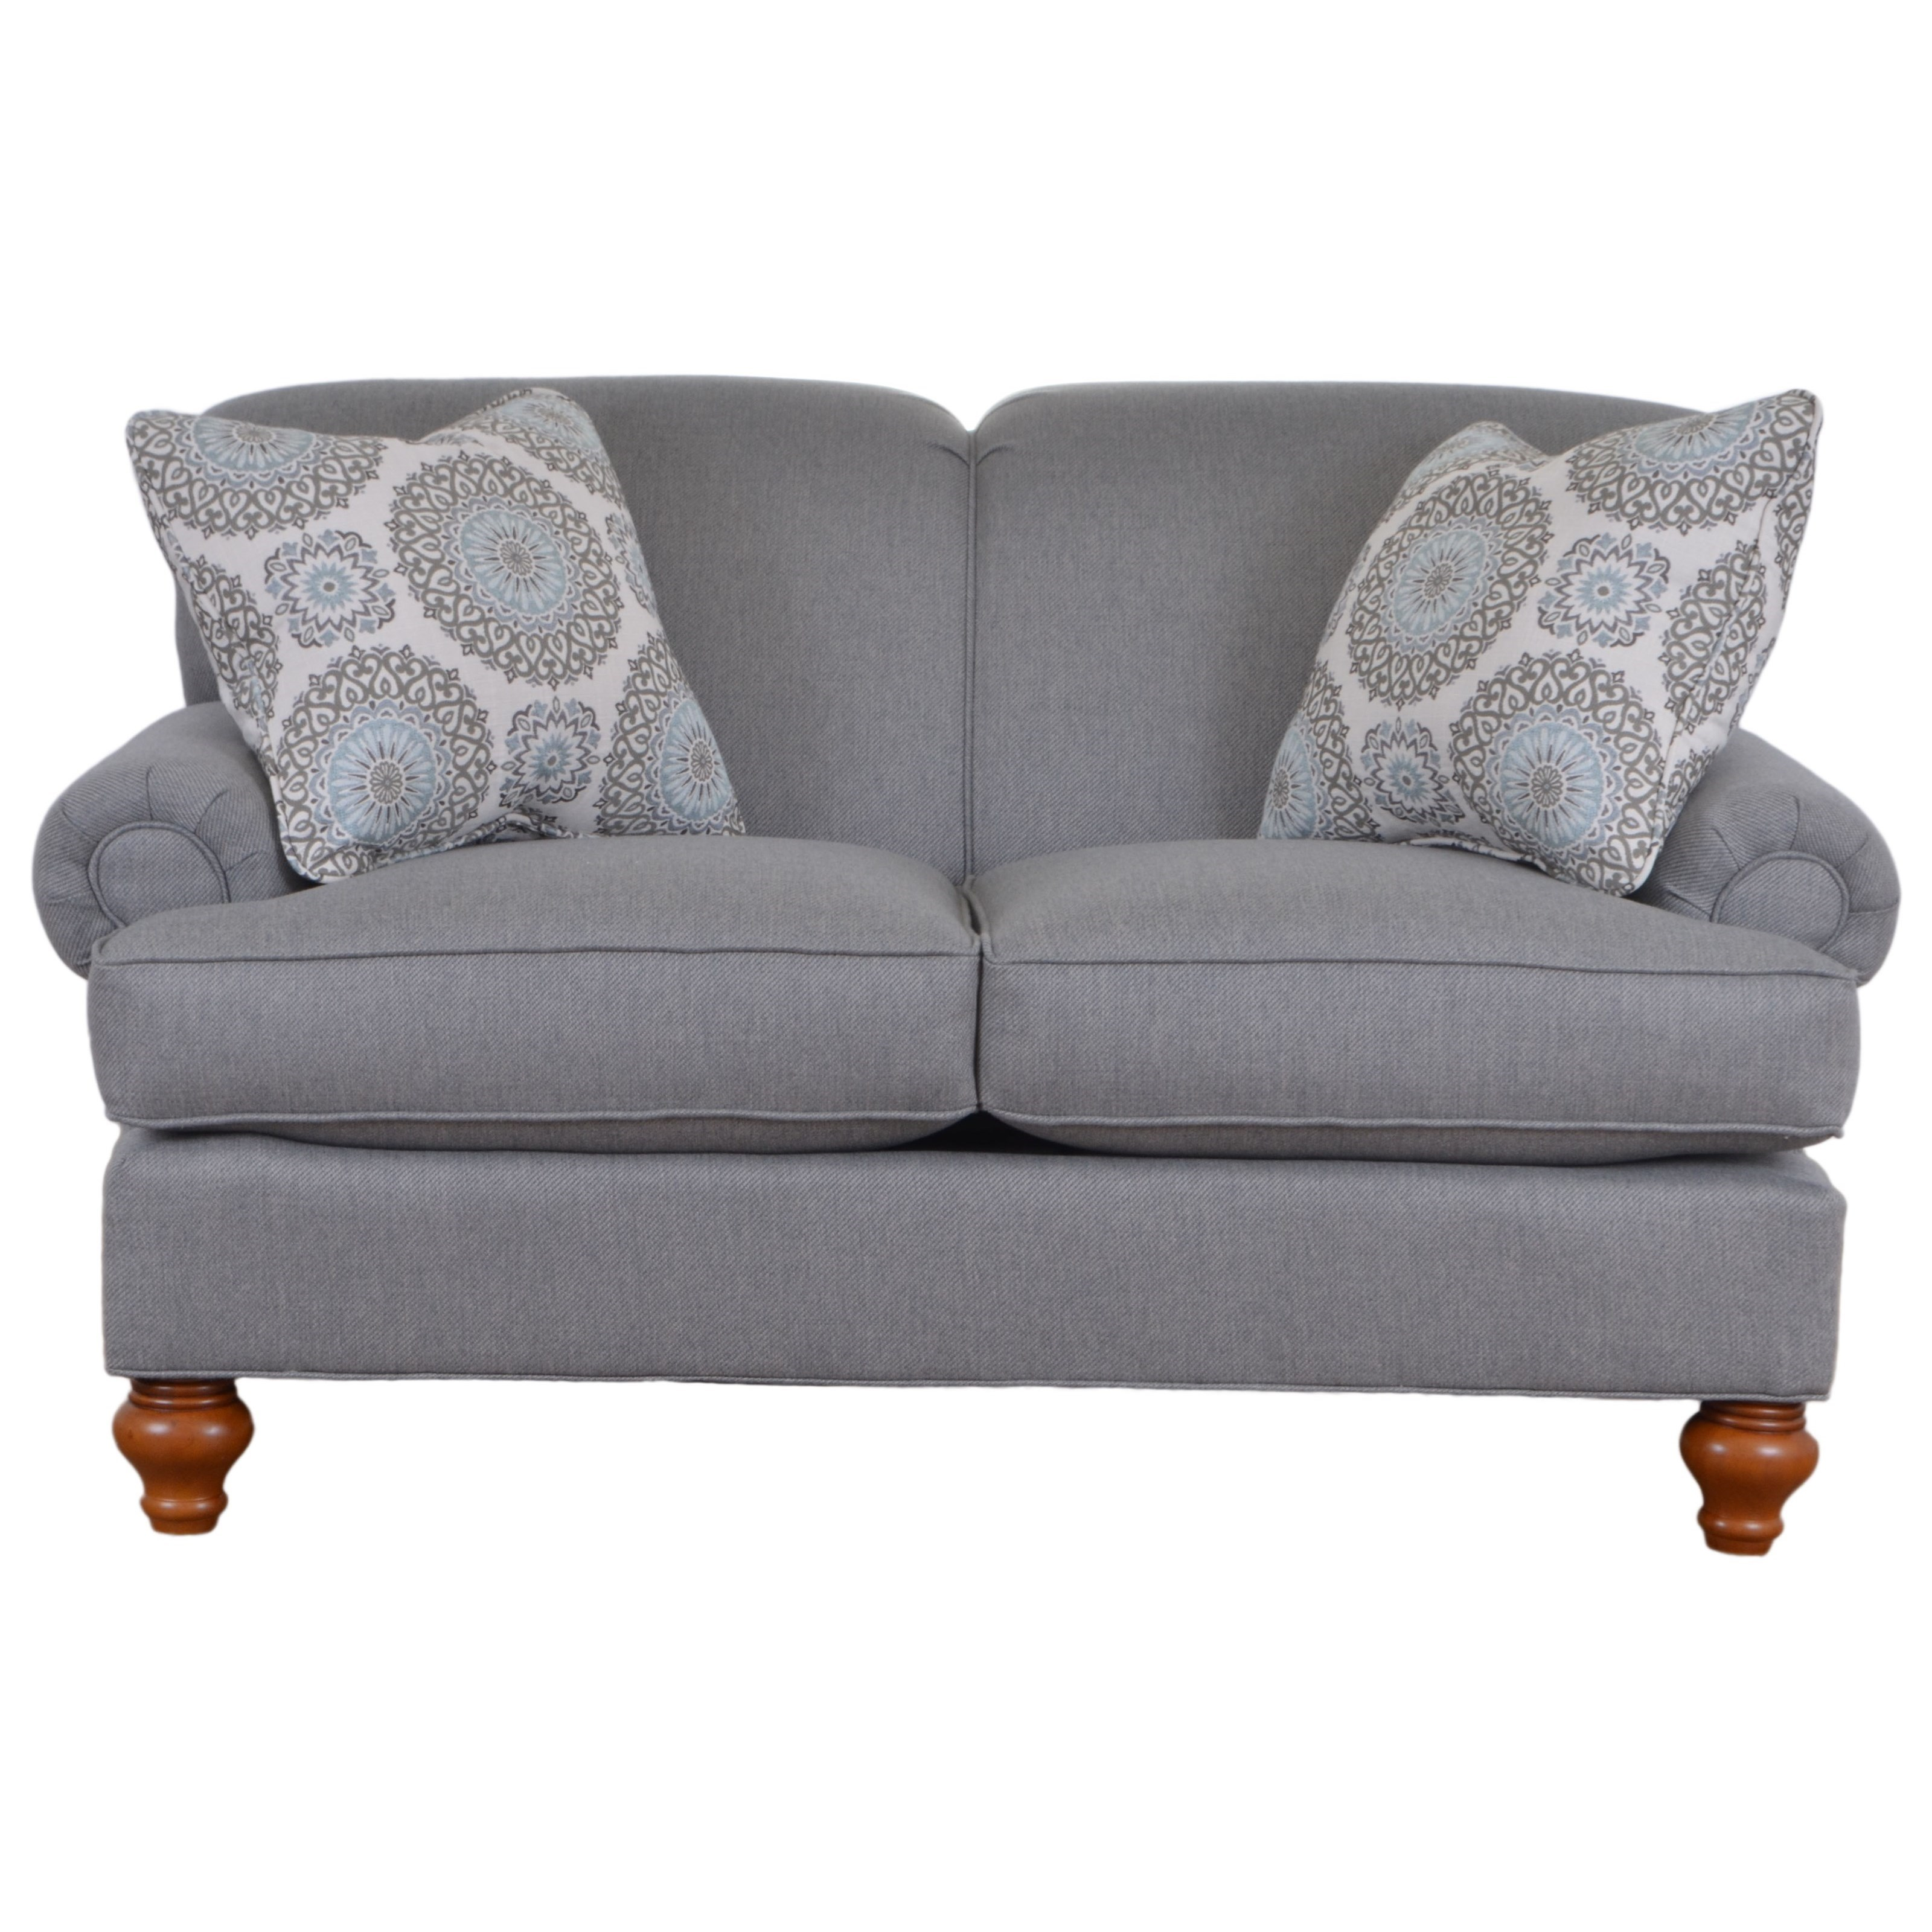 Hickorycraft 7047 Traditional Loveseat With Turned Wood Legs